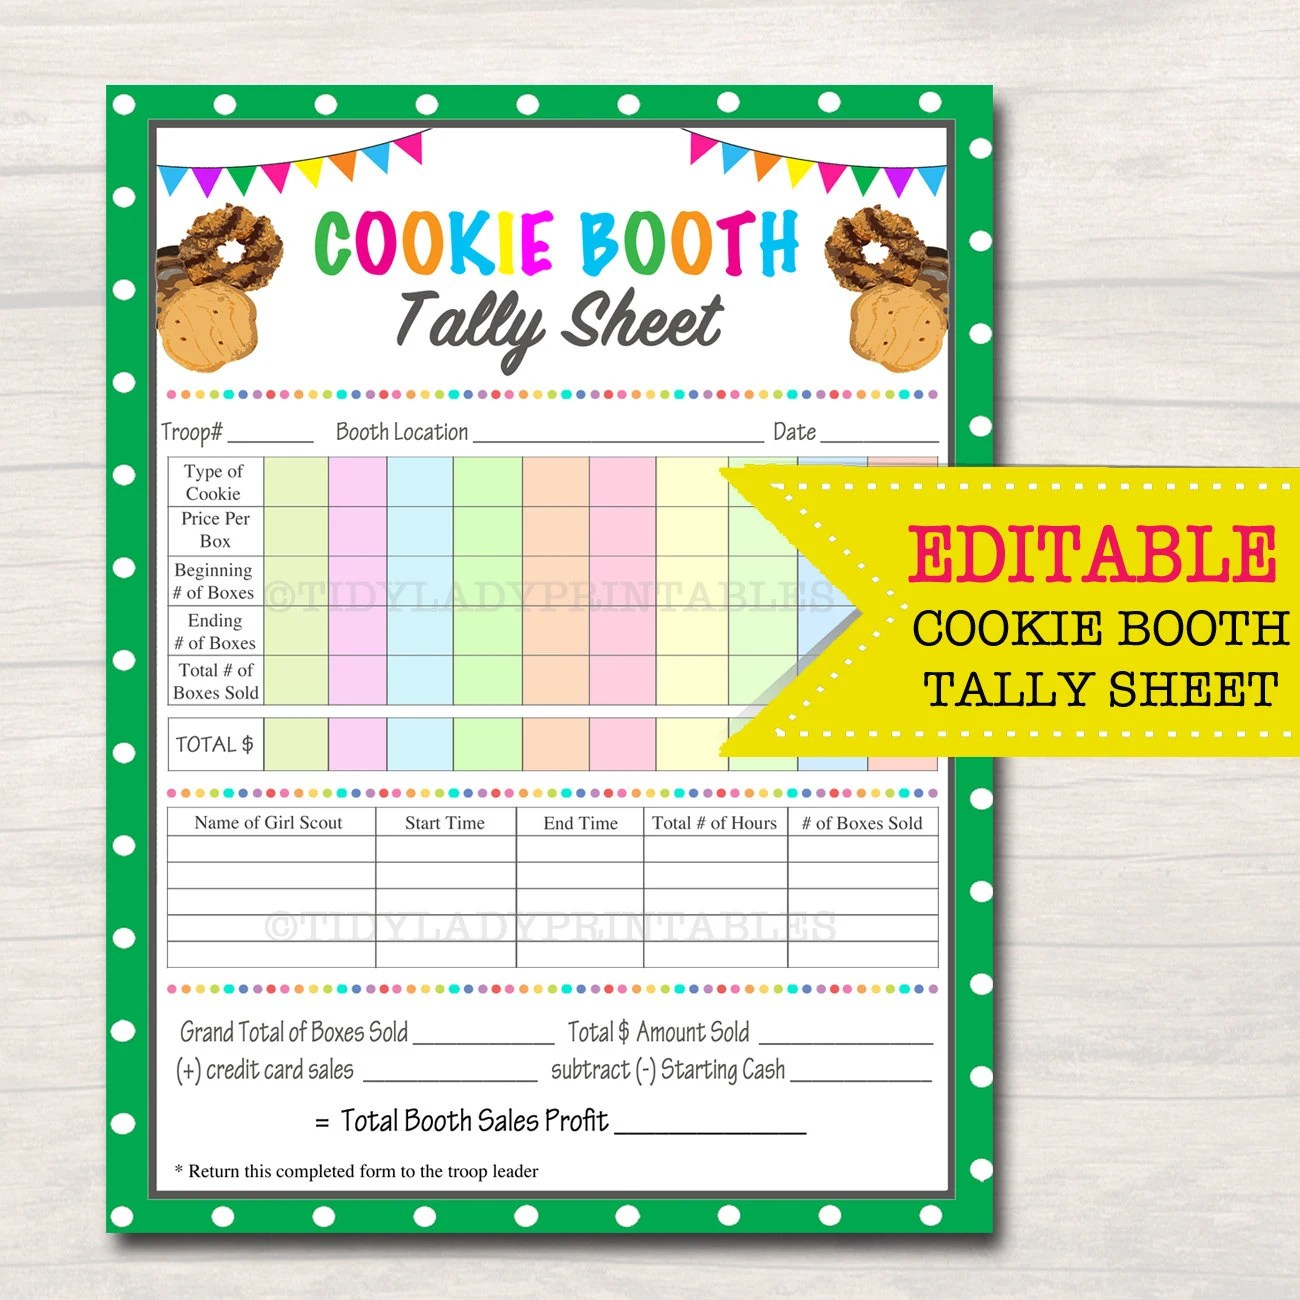 Editable Cookie Booth Tally Sheet Instant Download Troop